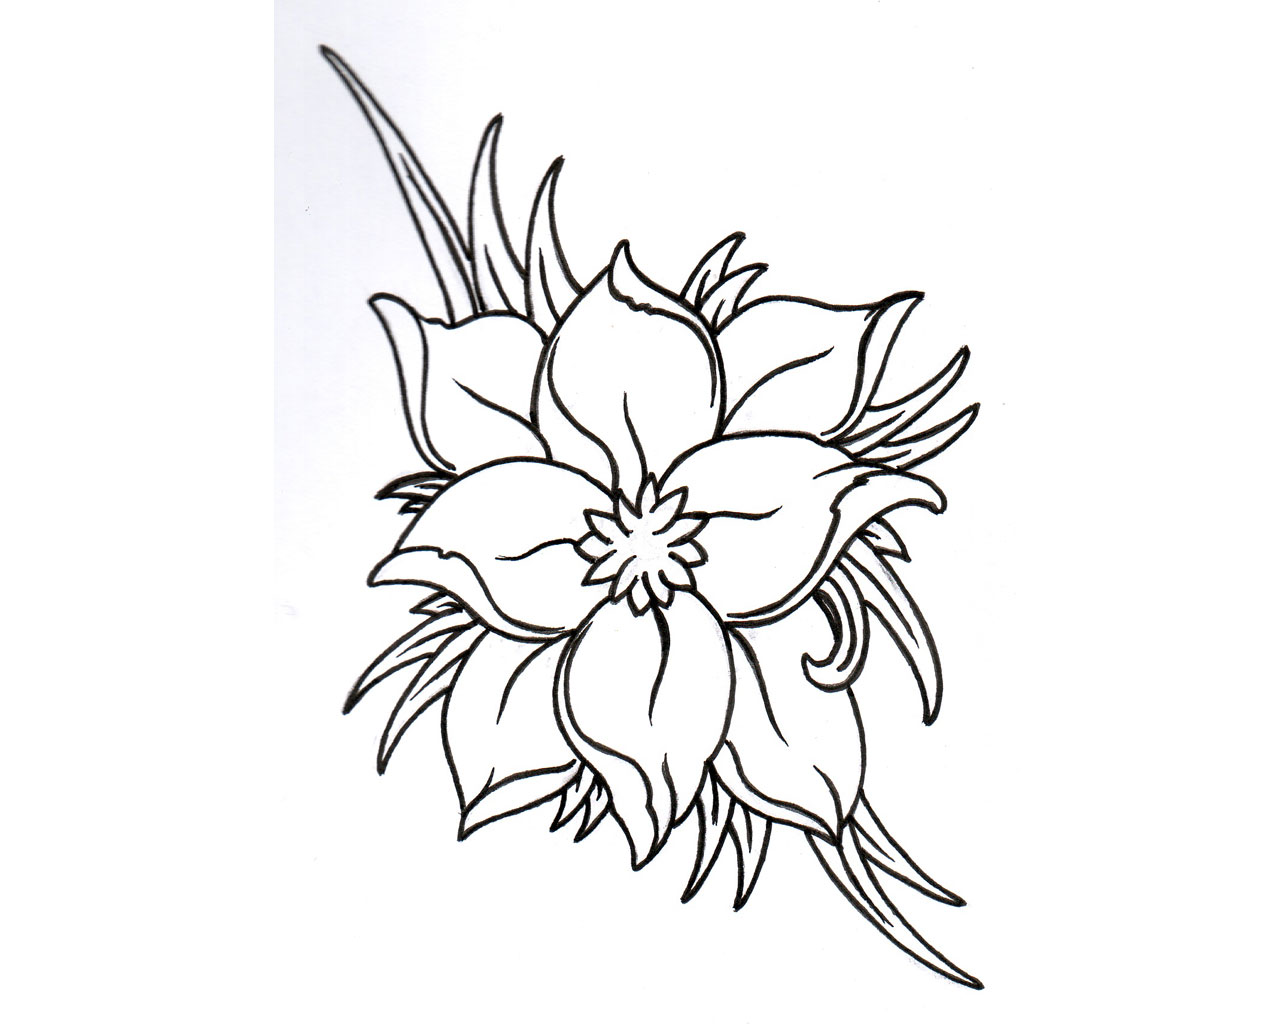 Flowers drawing black and white at getdrawings free for 1280x1024 black and white pictures of flowers to draw collection 66 mightylinksfo